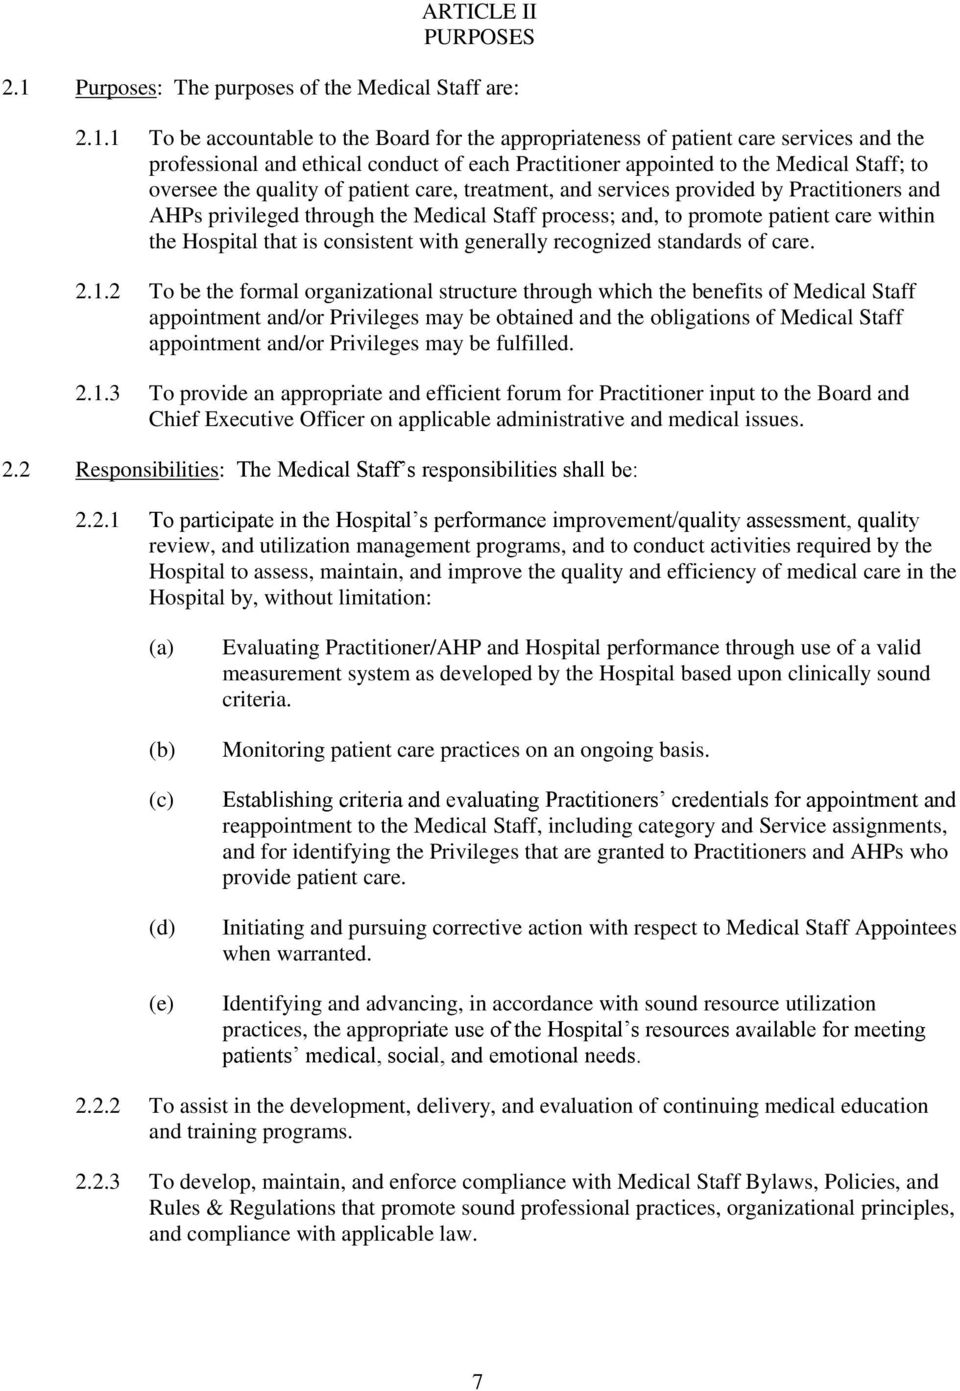 1 To be accountable to the Board for the appropriateness of patient care services and the professional and ethical conduct of each Practitioner appointed to the Medical Staff; to oversee the quality